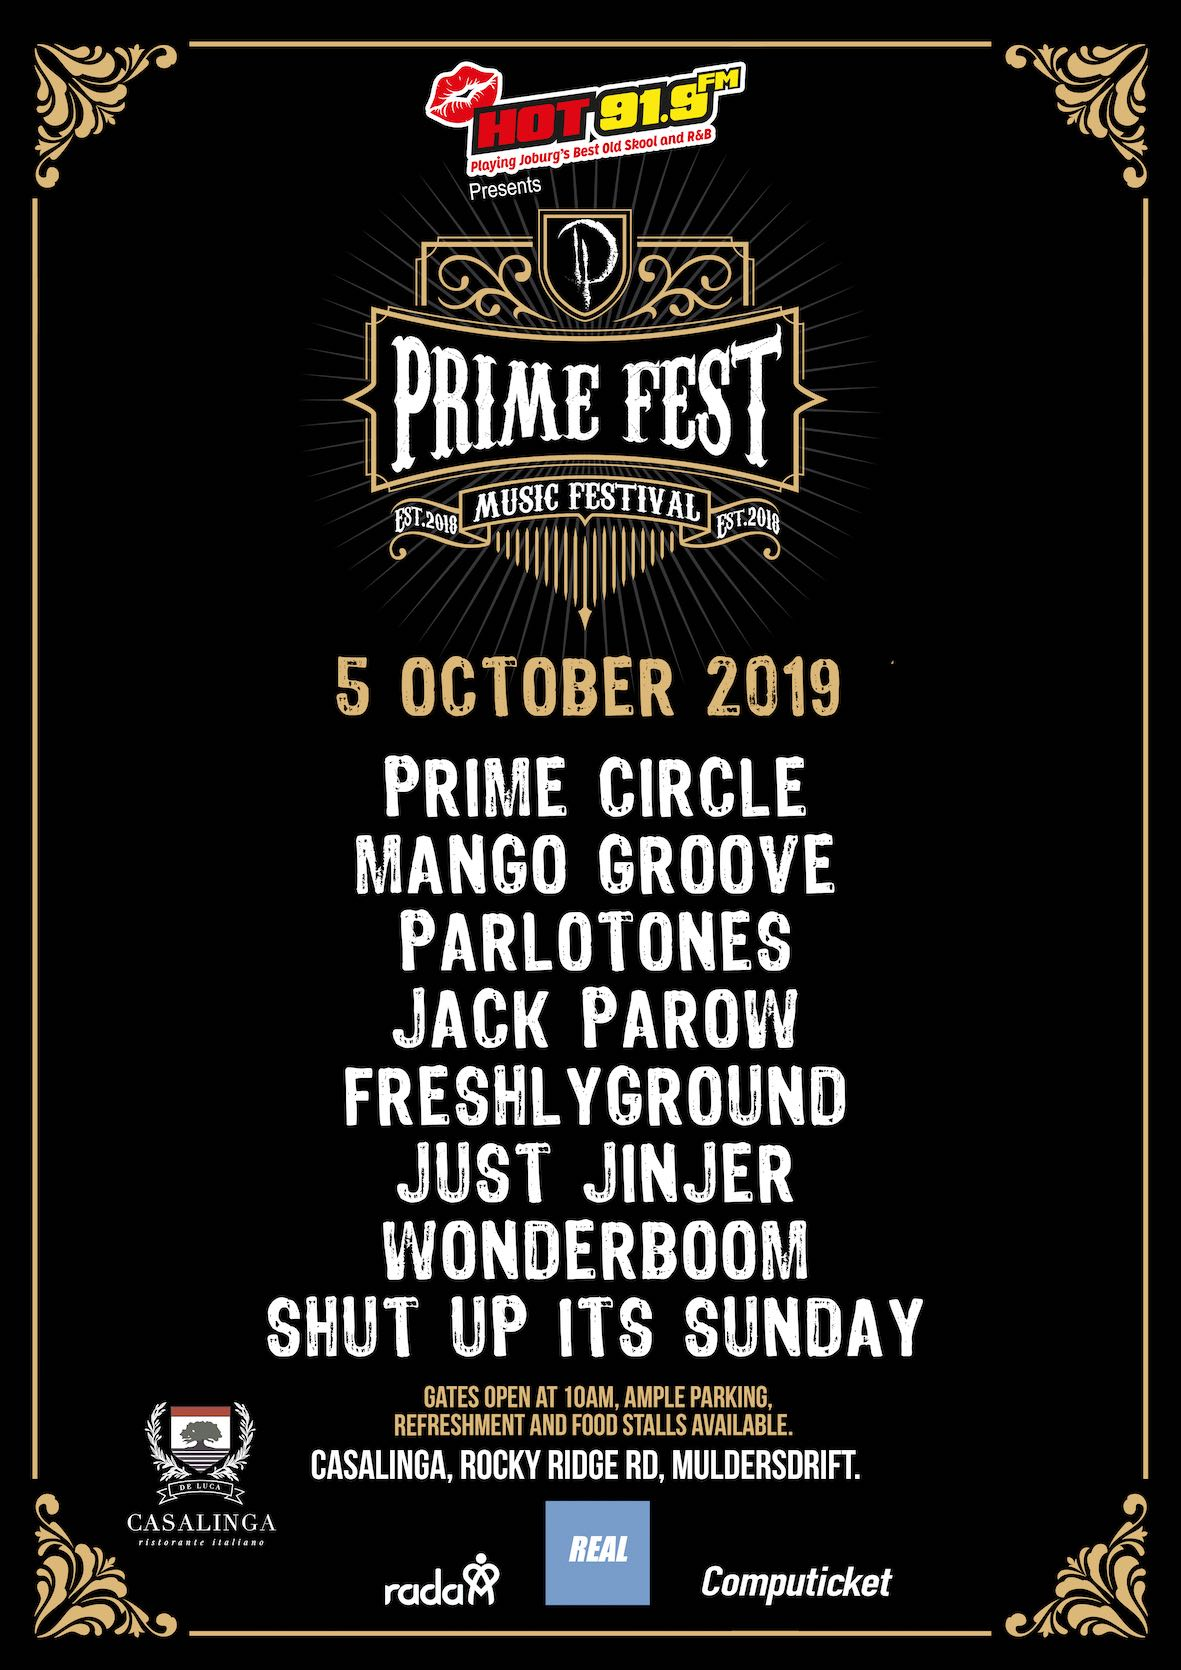 Returning for its second year,Prime Fest, Joburg's hottest annual music and lifestyle festival takes place on 5 October at Casalinga in Muldersdrift.